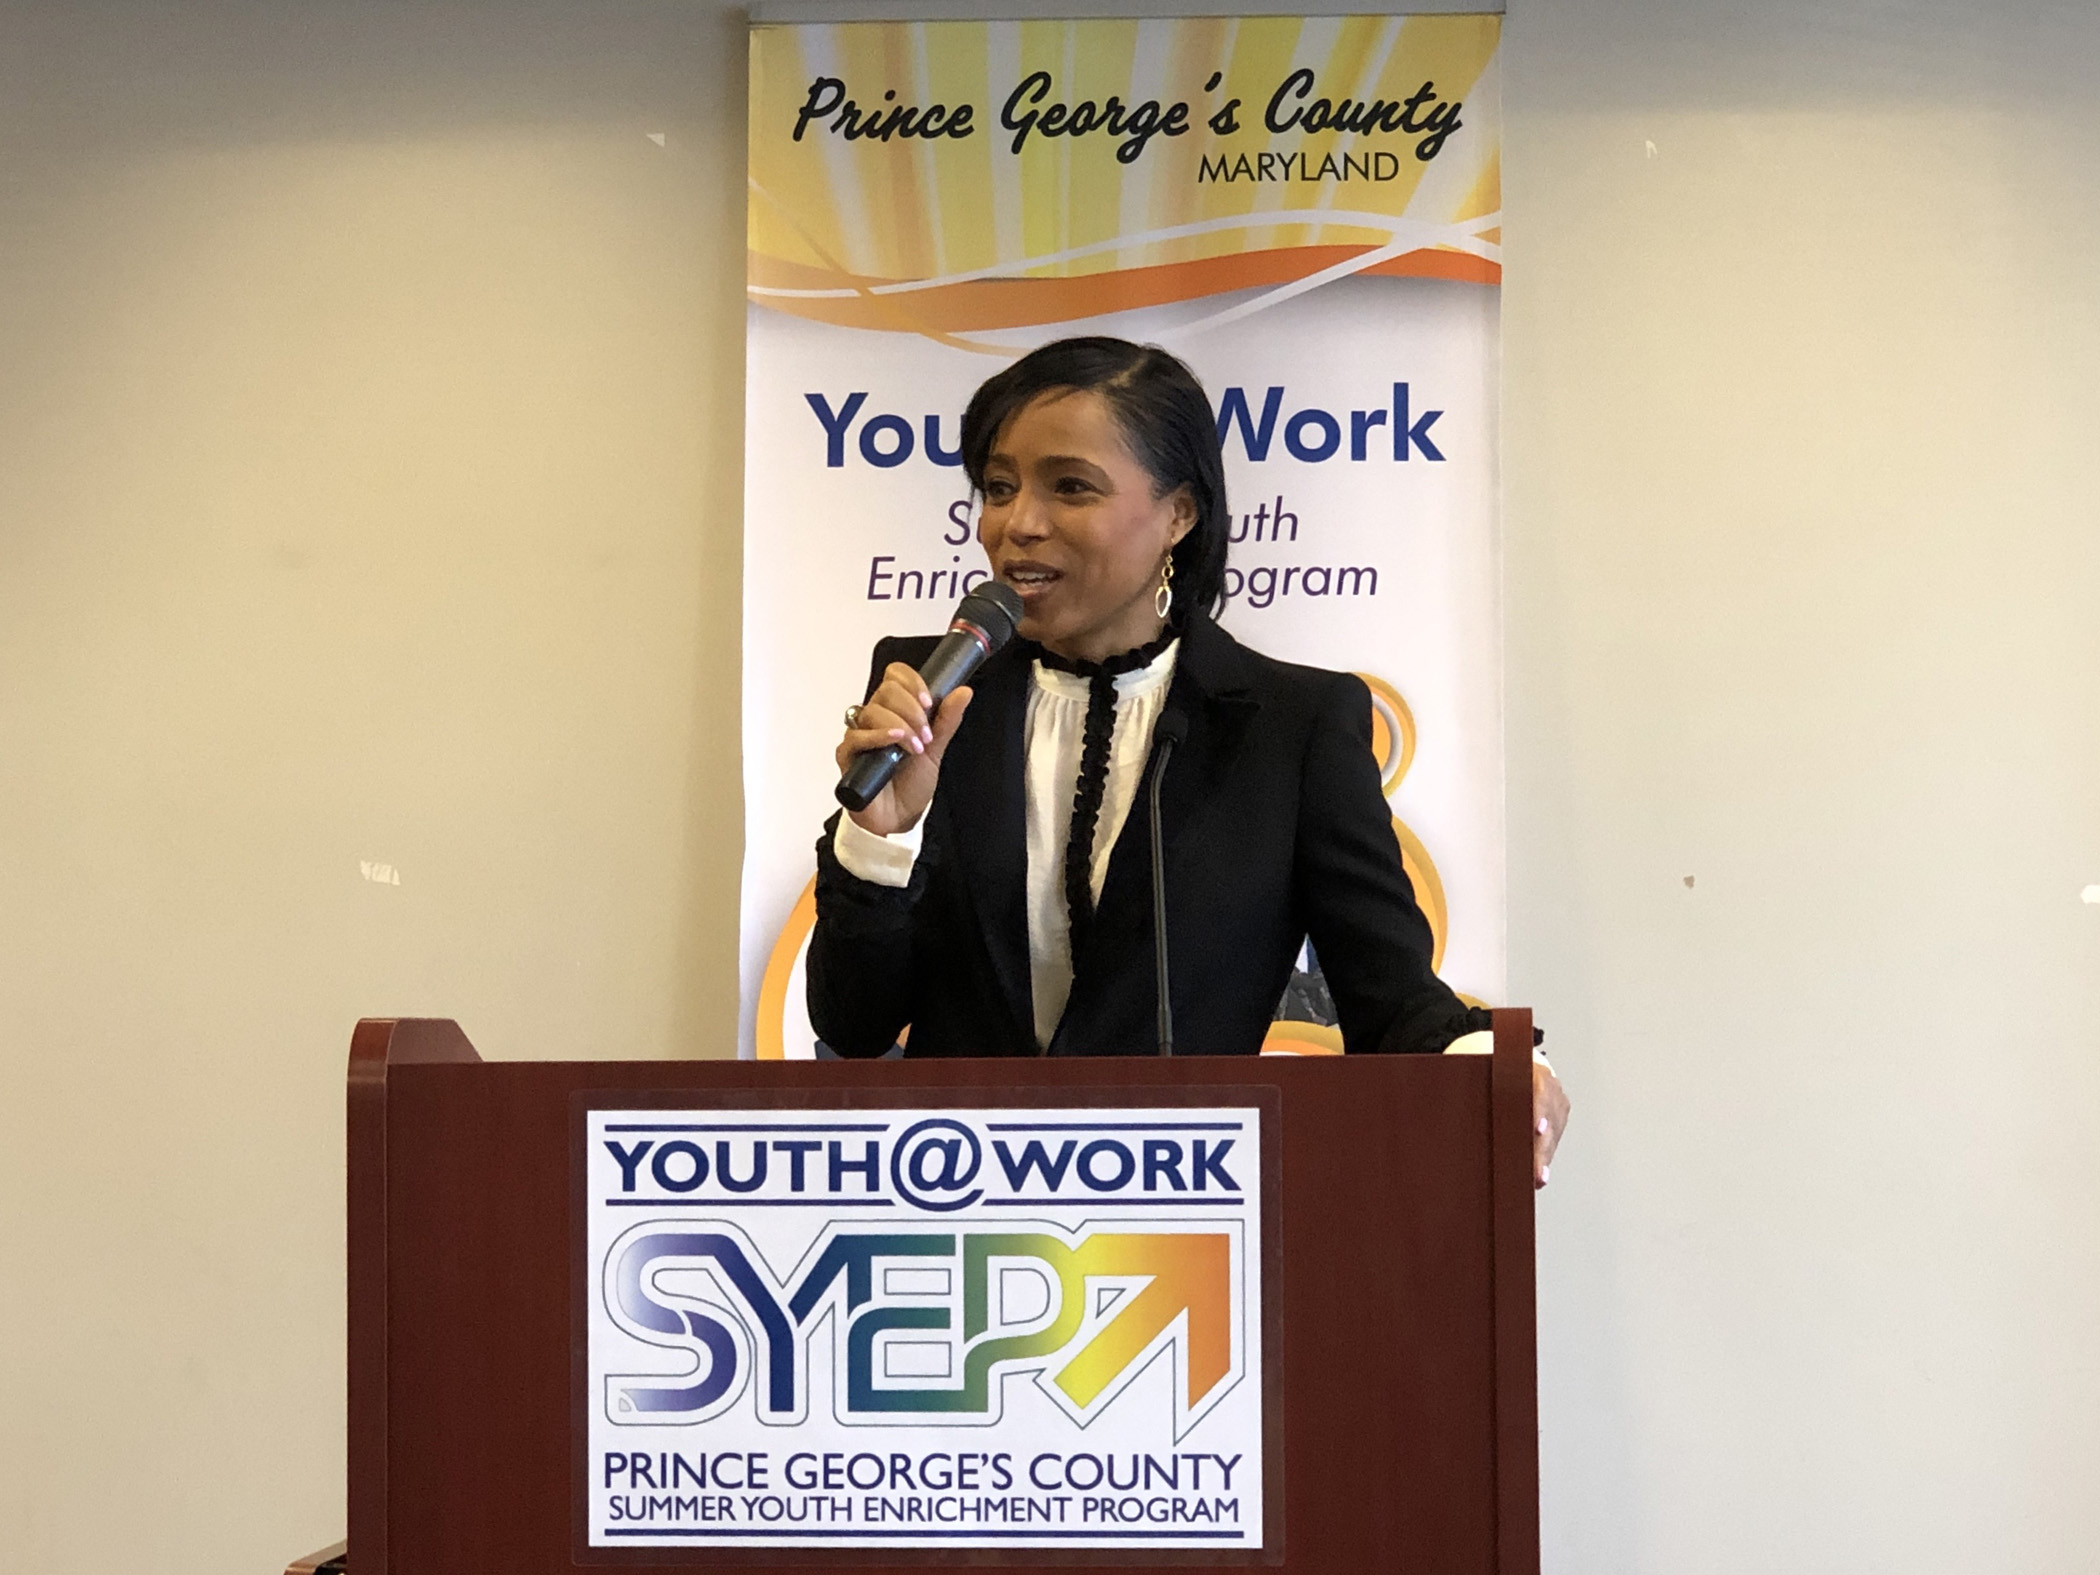 Prince George's County Executive Angela D. Alsobrooks draws over 100 business leaders to her call to increase youth summer jobs from 3,000 to 6,000 this year.  PHOTO: RICHARD MONTGOMERY // RIXSTAR STUDIOS.